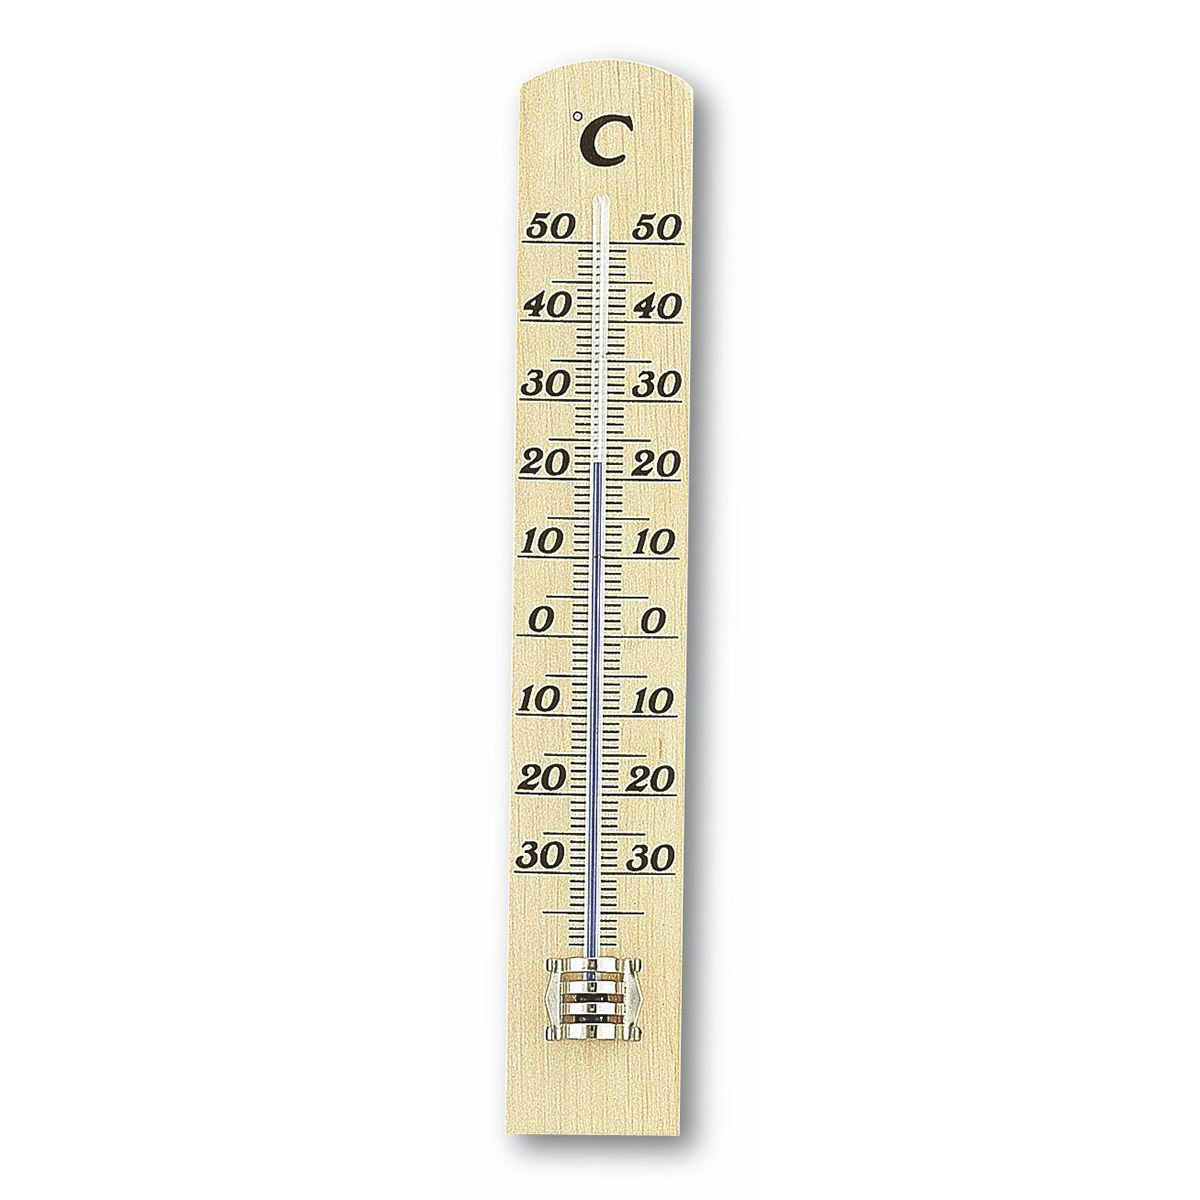 12-1003-05-analoges-innen-aussen-thermometer-buche-1200x1200px.jpg